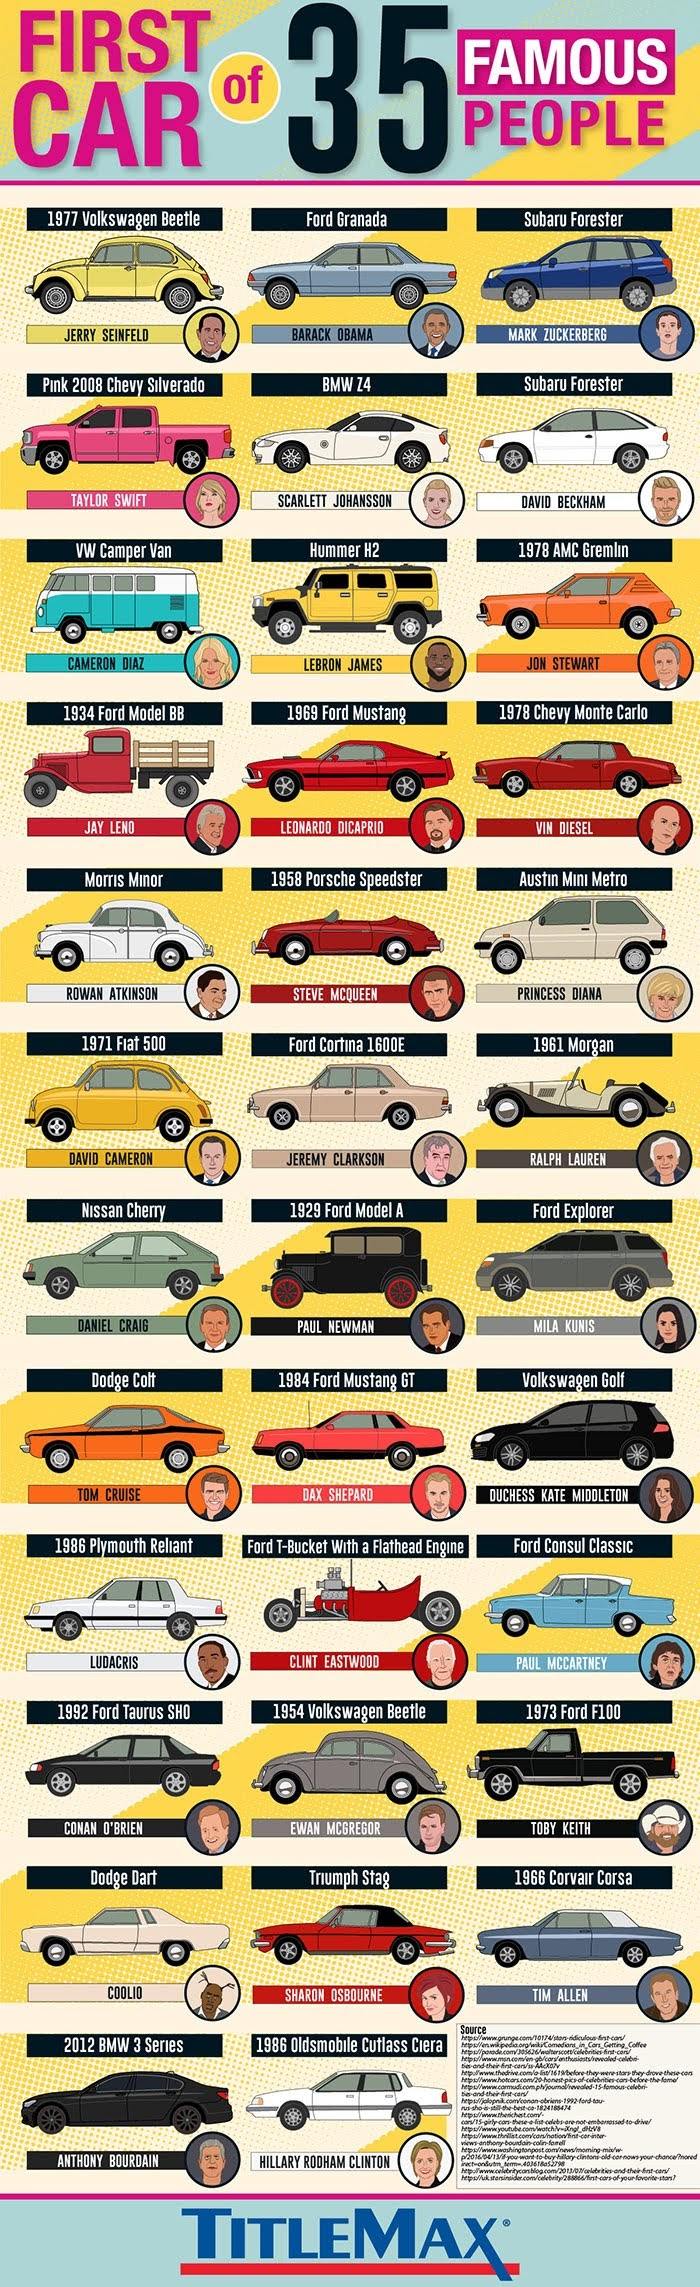 Do You Know What Cars These Famous People First Owned? #infographic